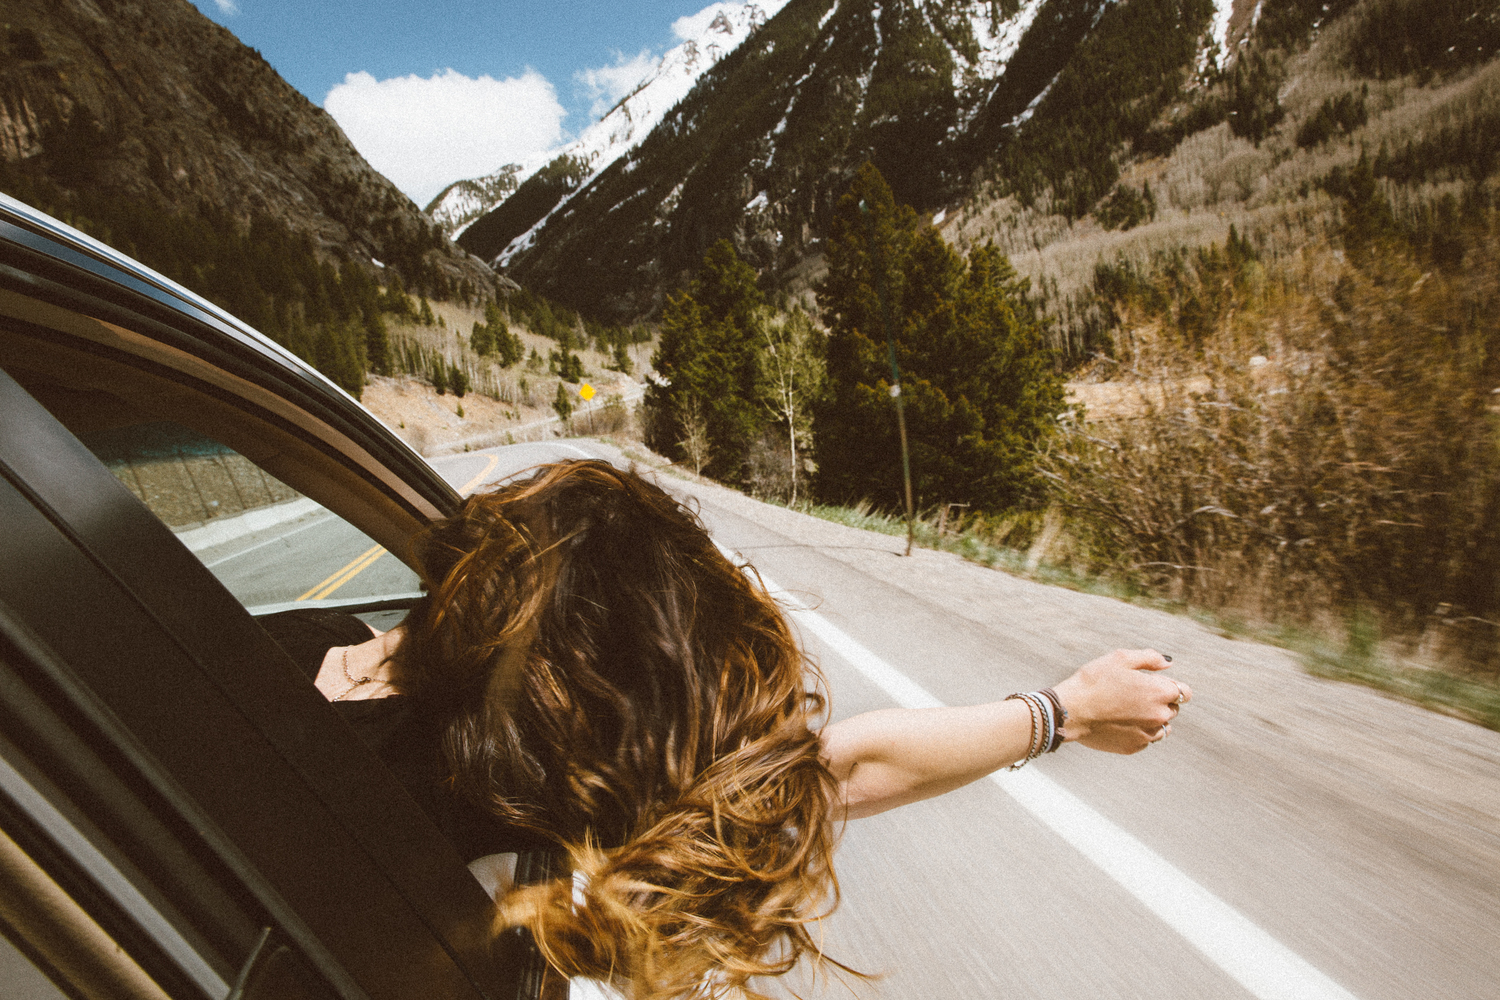 "<p><span style=""font-weight: bold;"">Tips for a safe (and fun) summer road trip</span></p>"